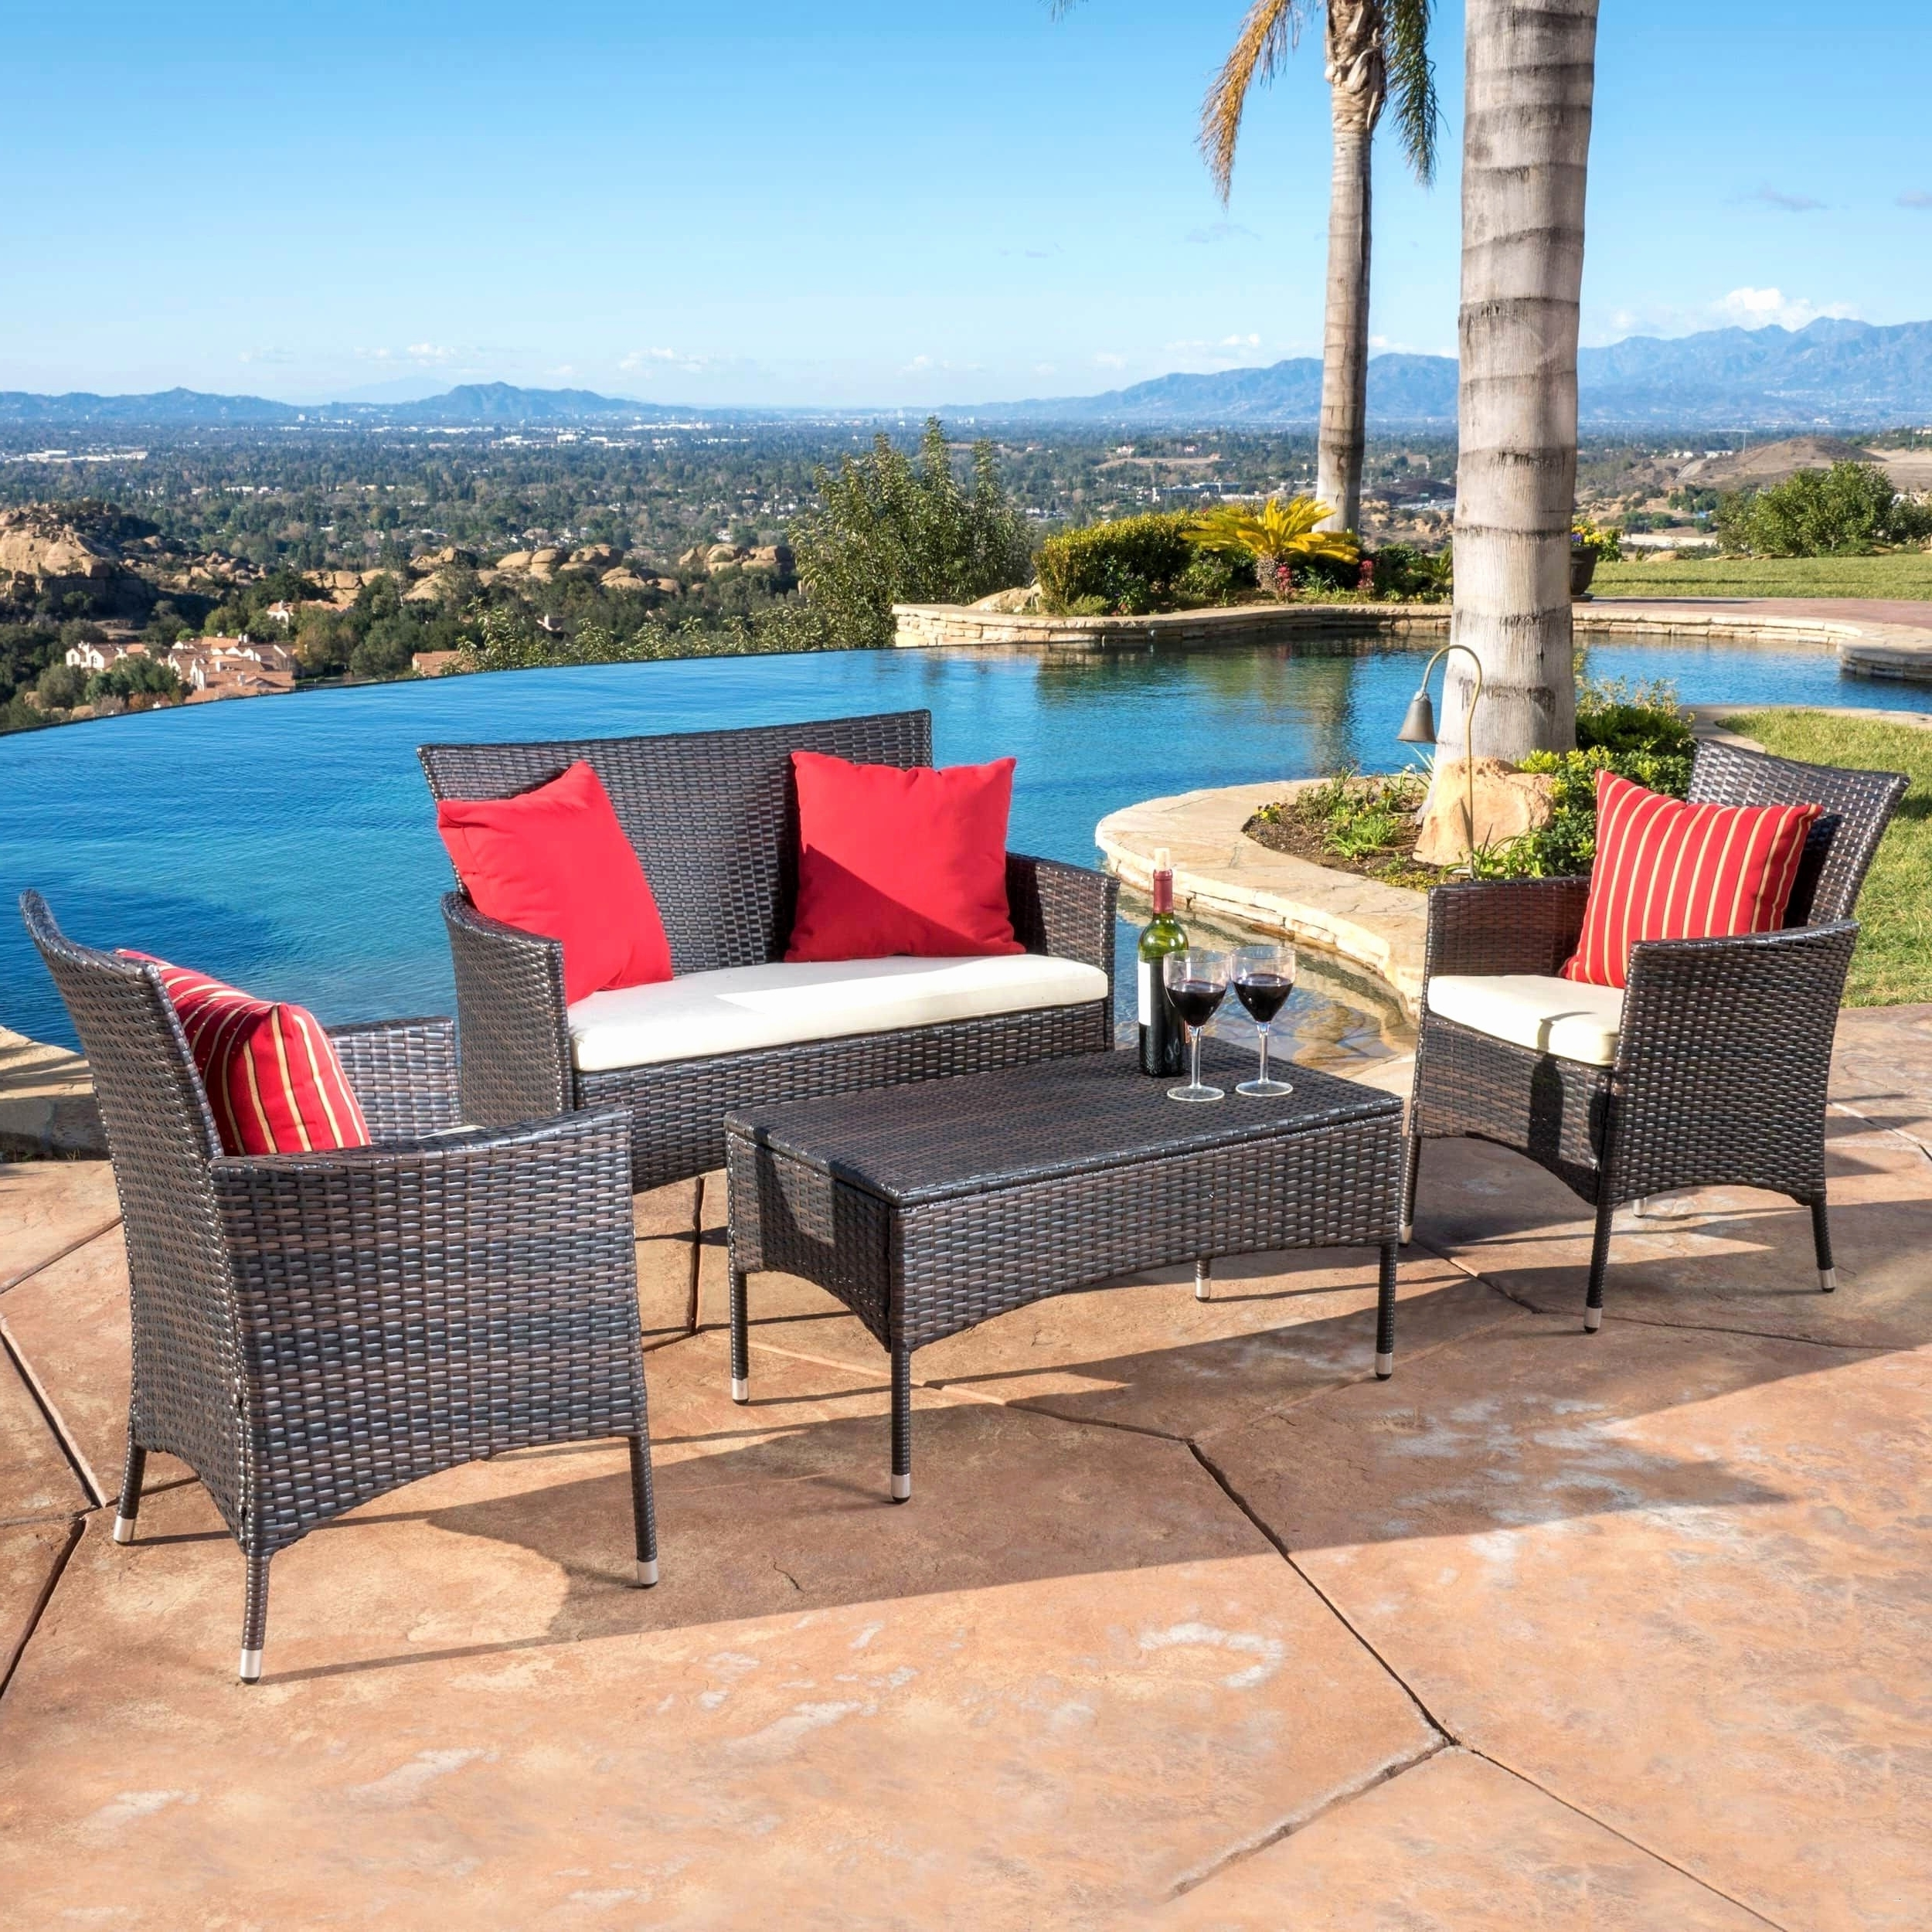 Safavieh Outdoor Furniture Lovely Outdoor Dining Patio Furniture Regarding Most Up To Date Patio Dining Umbrellas (View 15 of 20)